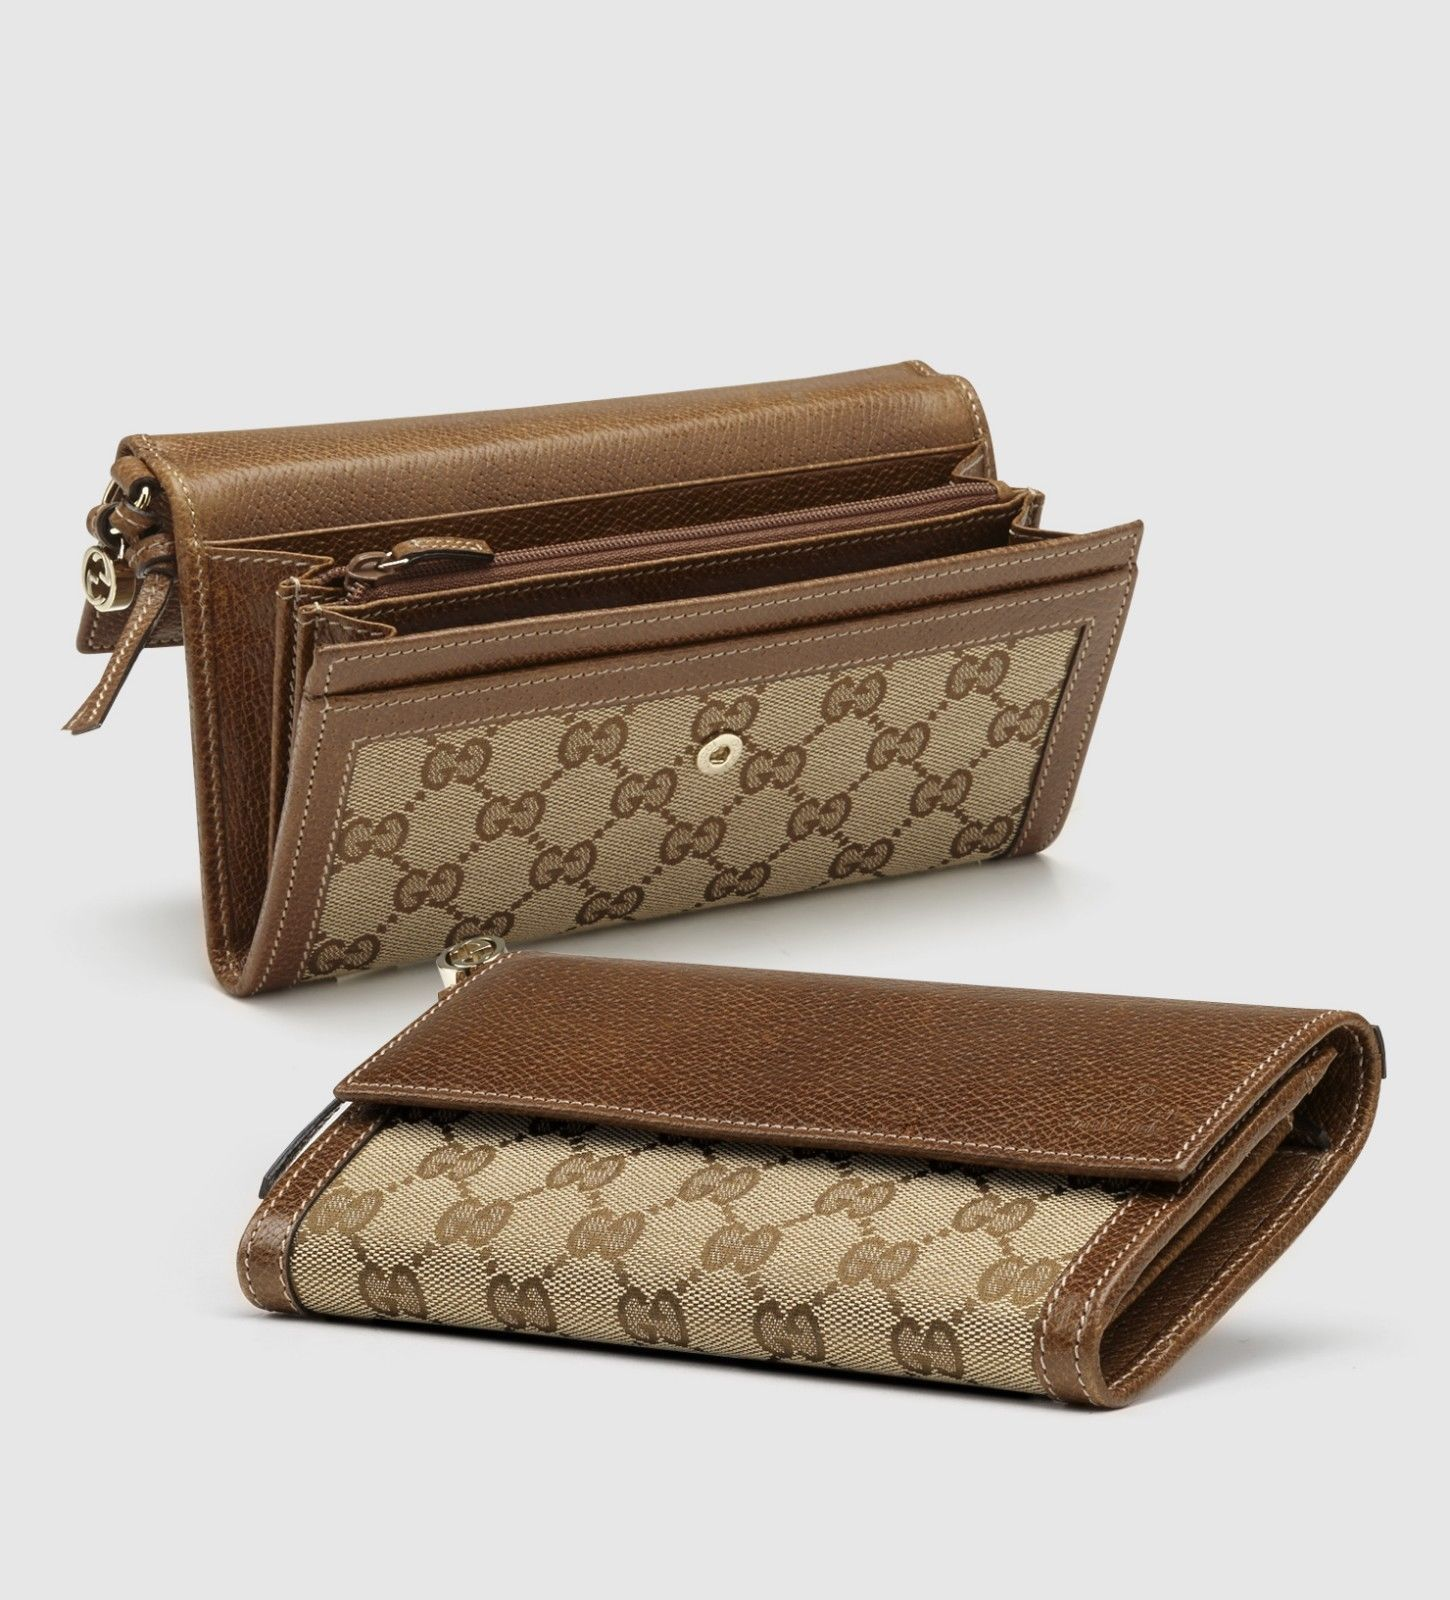 9a916aa0139 Gucci Womens Bree Gg Supreme Canvas   Leather Continental Wallet ...